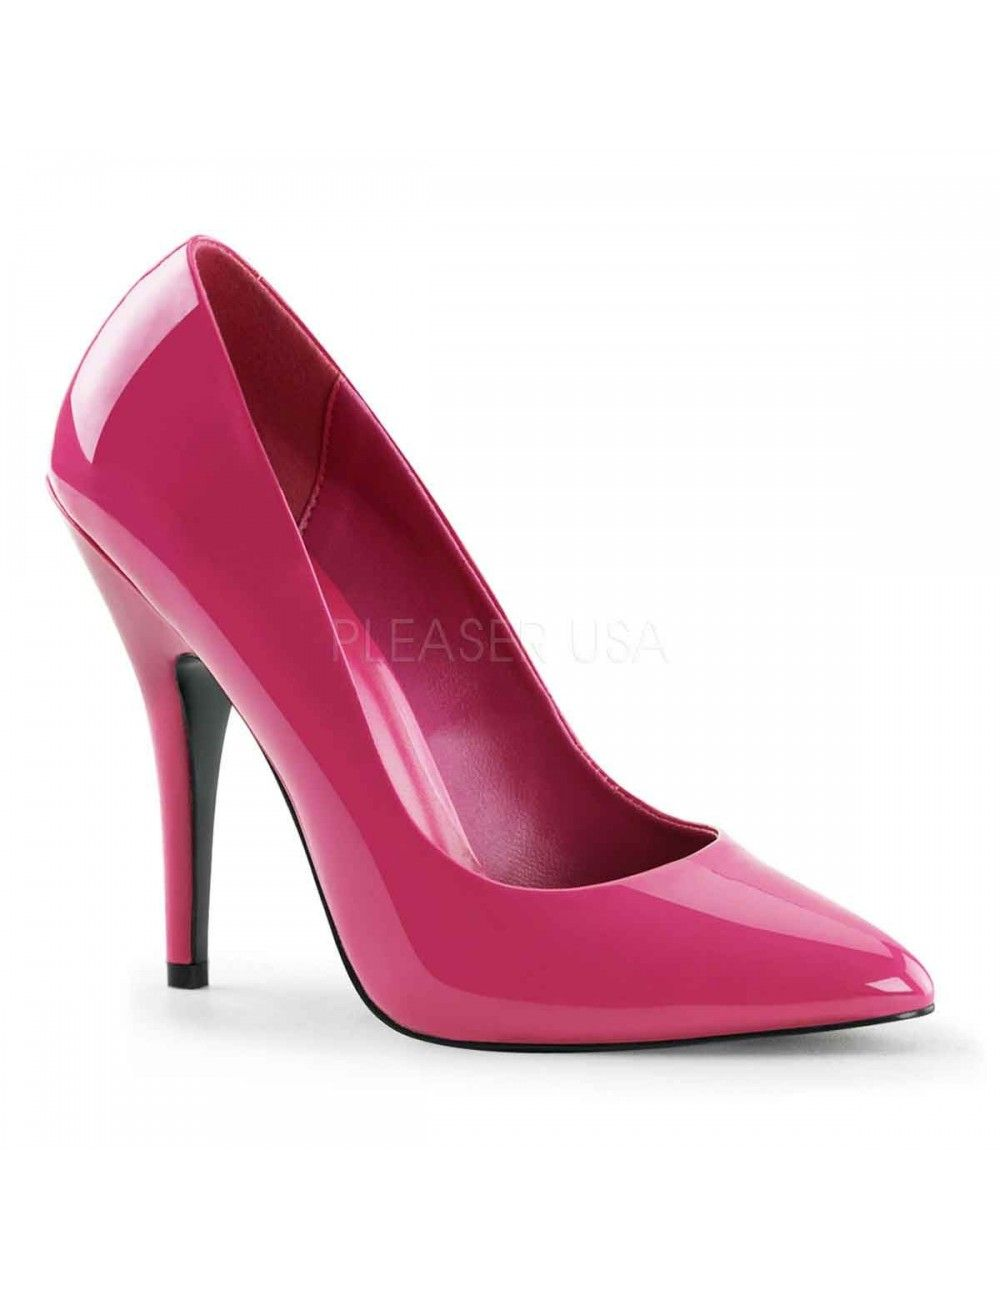 Escarpins Talons Hauts Seduce Rose Pleaser